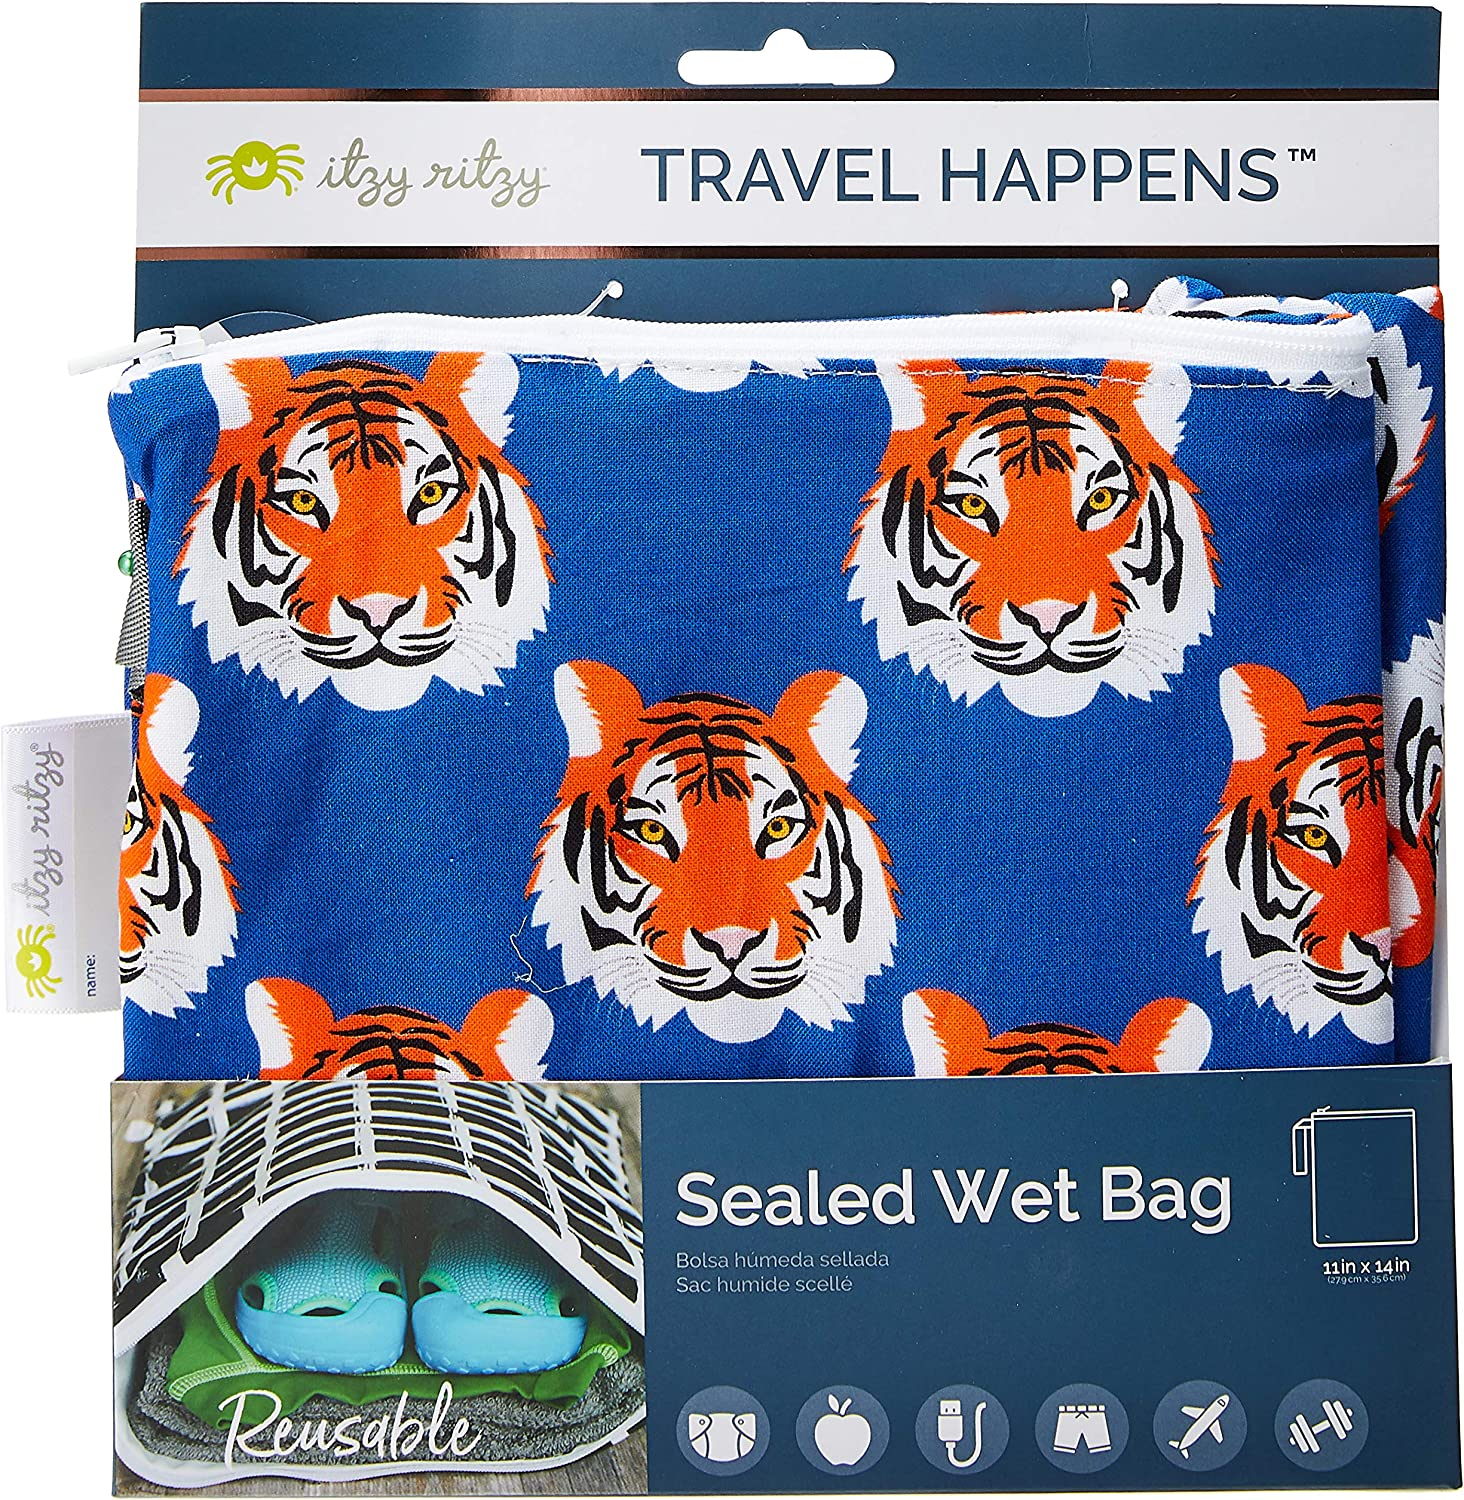 Travel Happens Bolsa sellada h/úmeda mediana Roar Itzy Ritzy